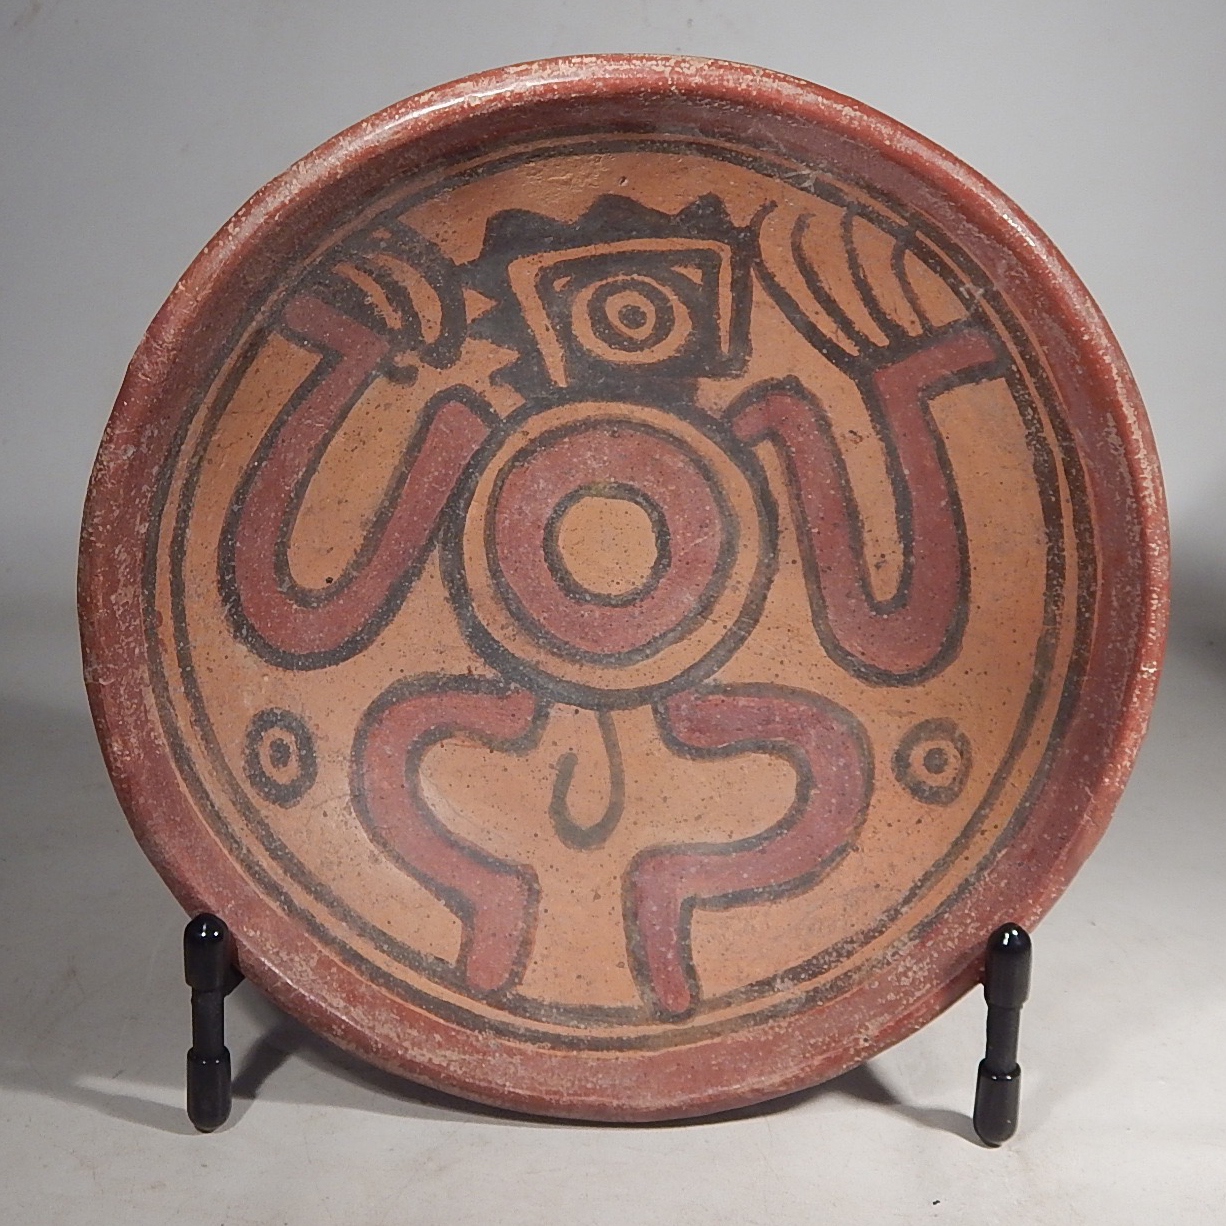 Pre Columbian Costa Rica Nicoya Pottery Polychrome Dancing Monkey Deity God Bowl Vessel